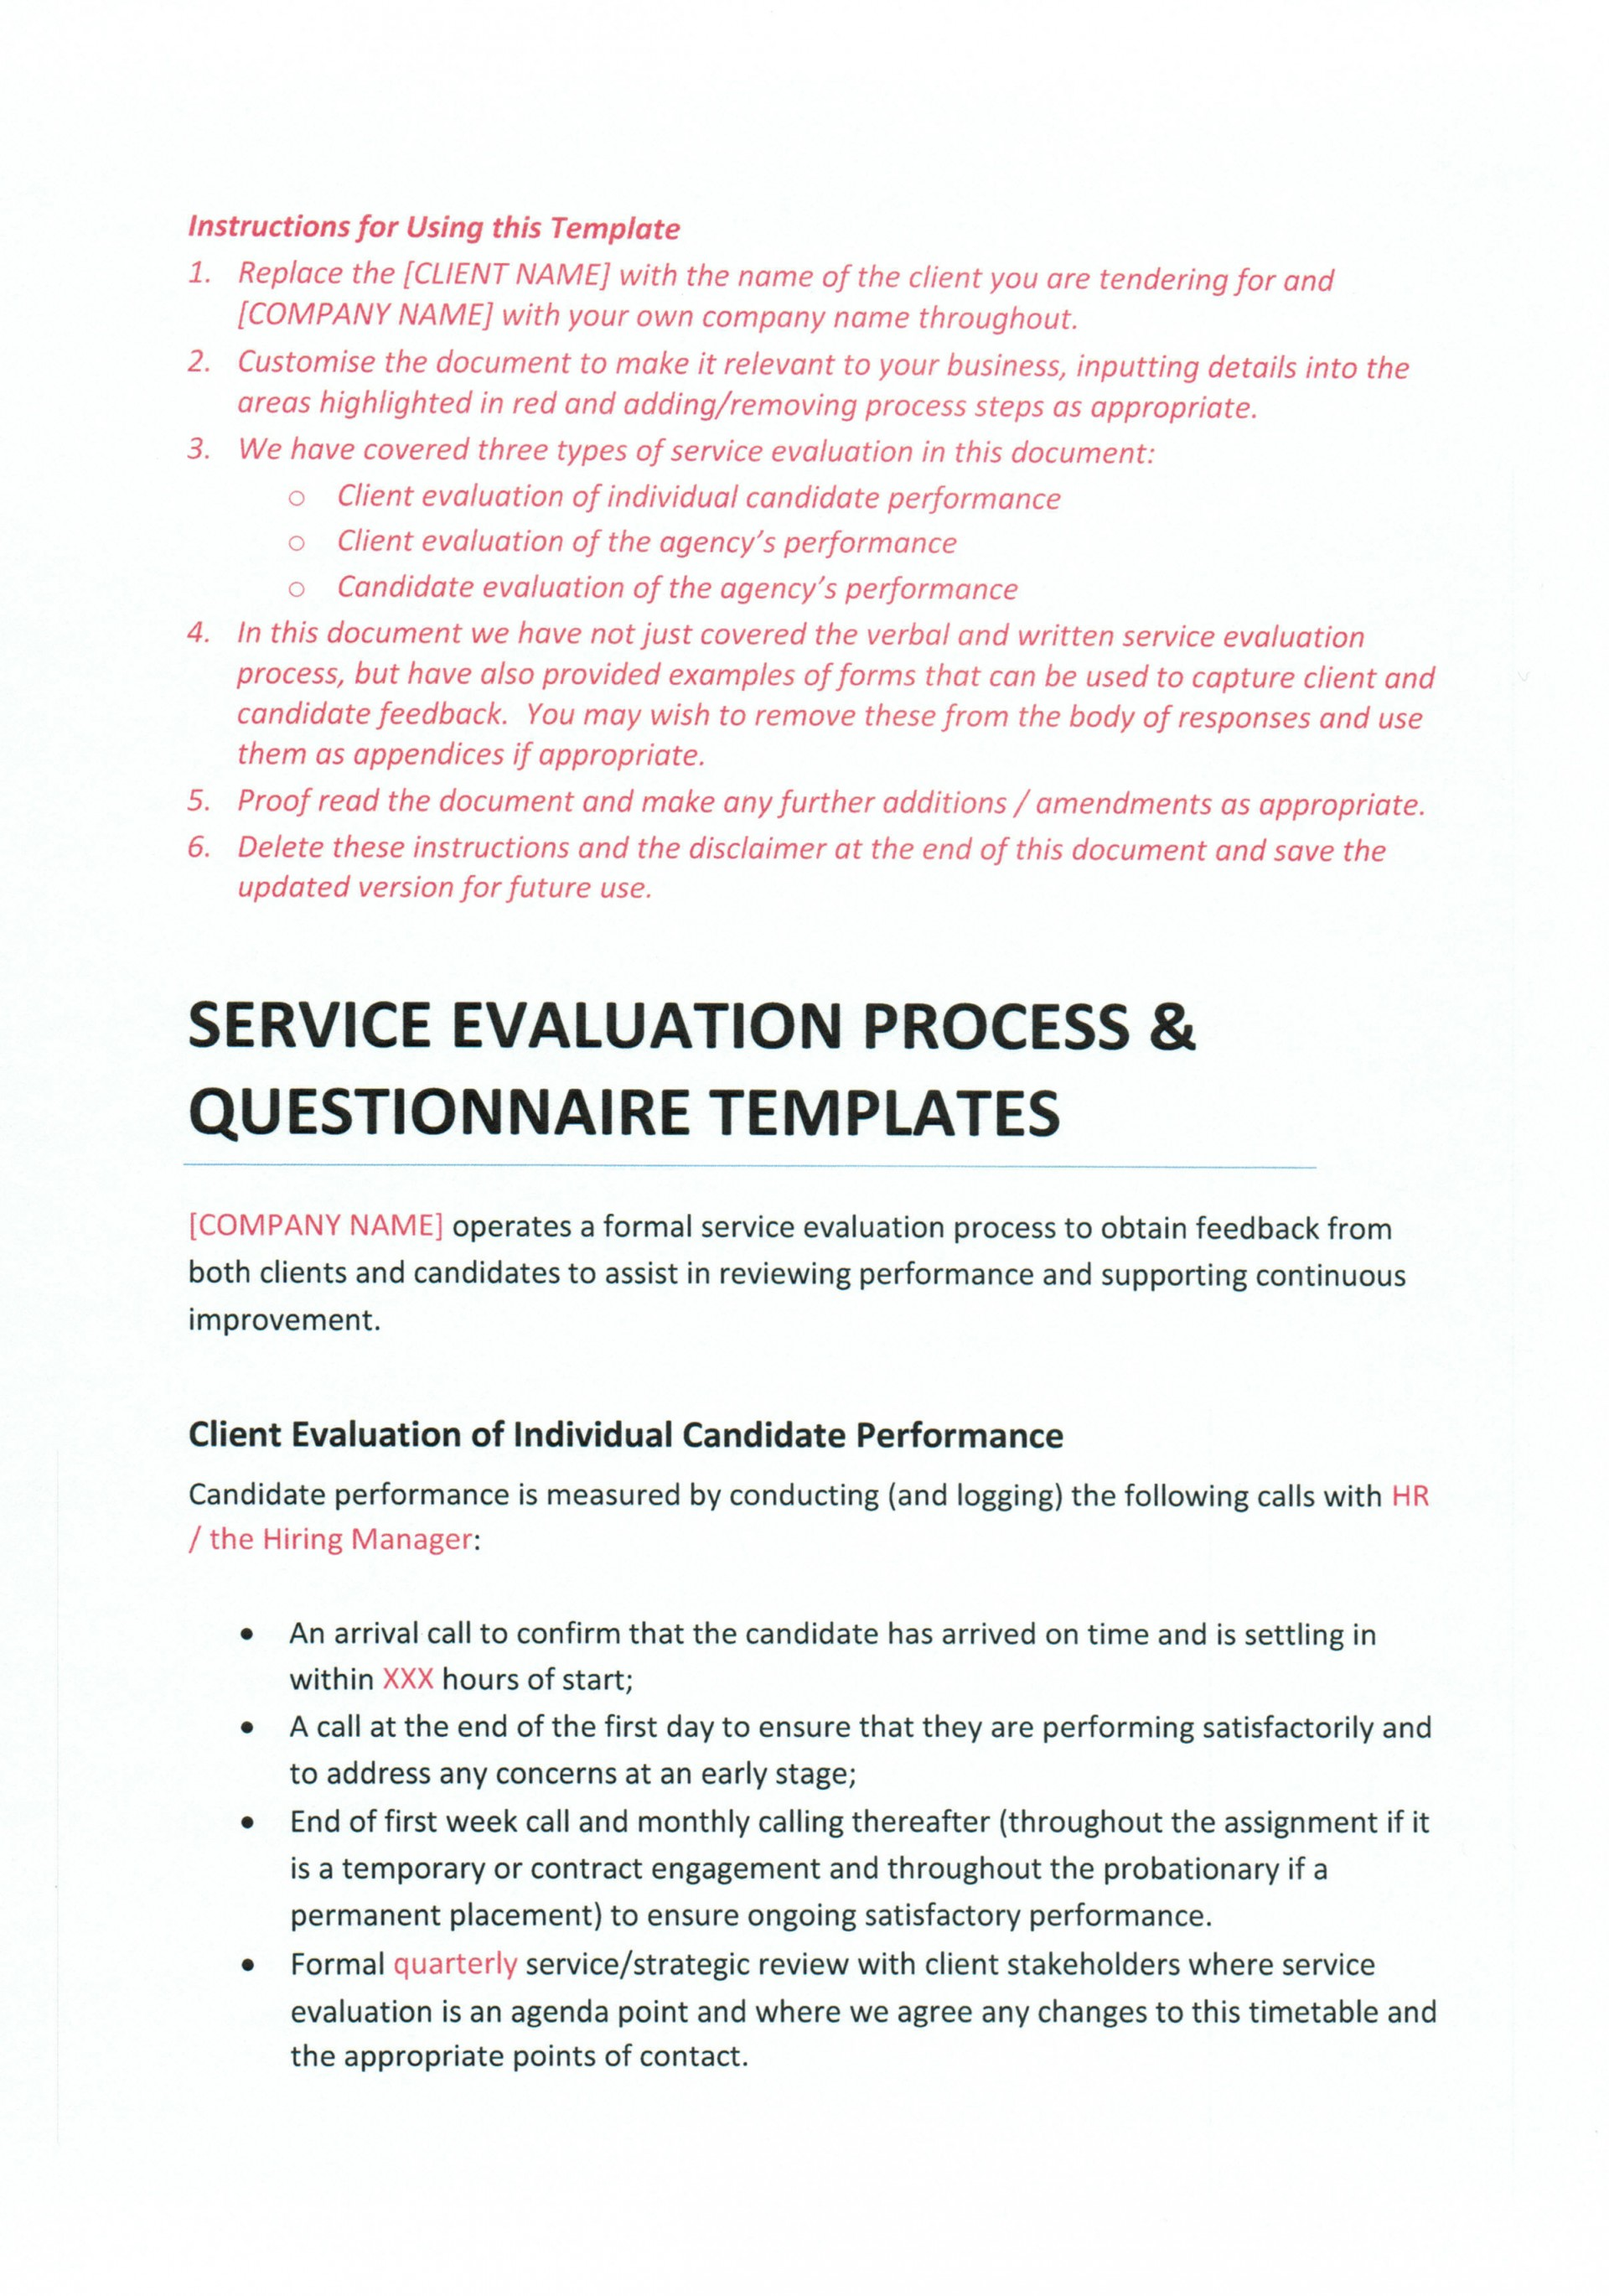 004 Health Care Essay Serviceevaluation Impressive Universal Introduction Assignment Cost Access And Quality In English 1920